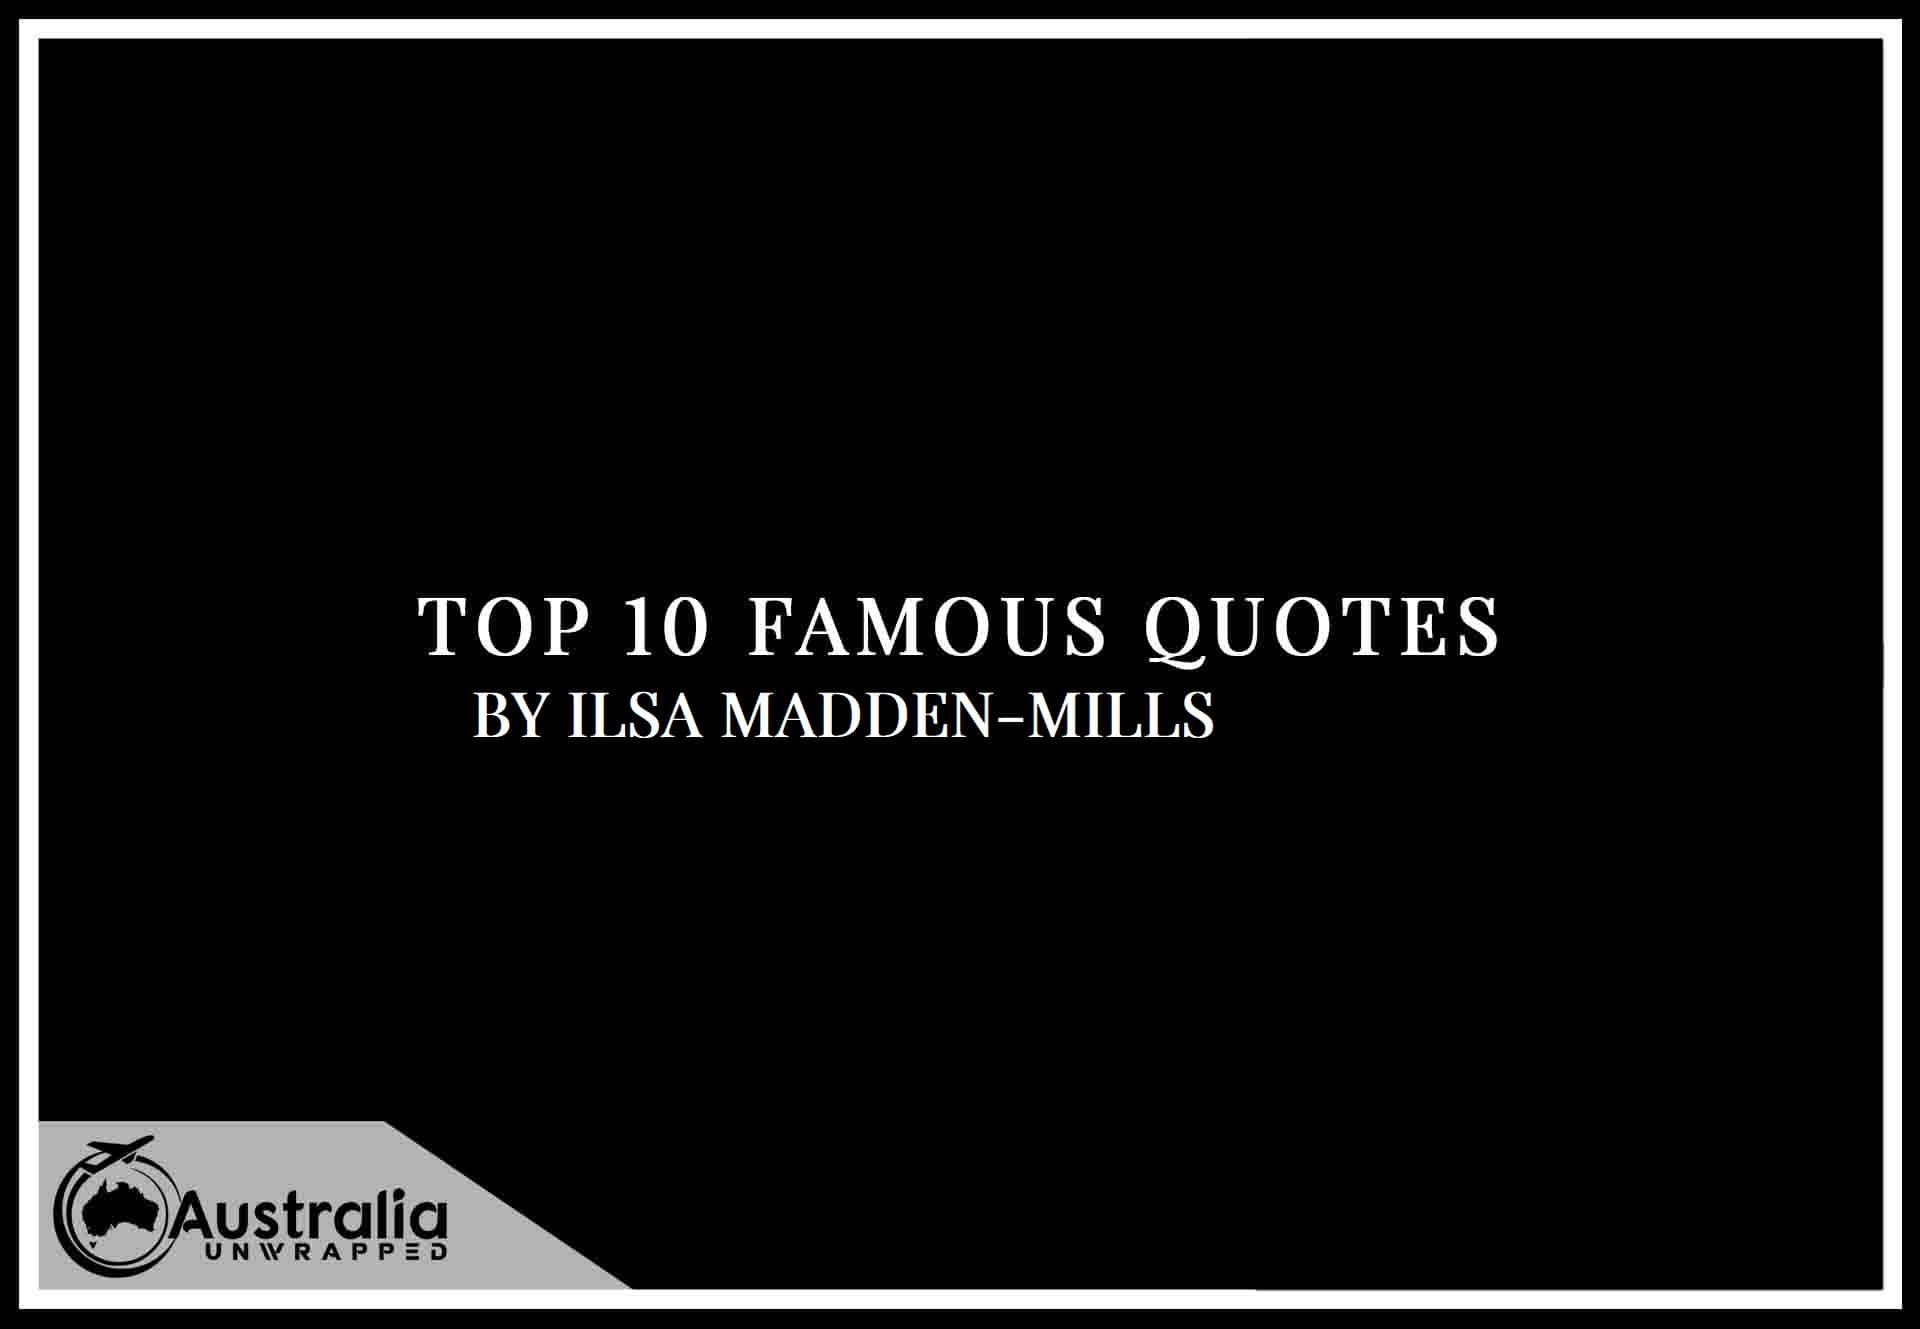 Top 10 Famous Quotes by Author Ilsa Madden-Mills